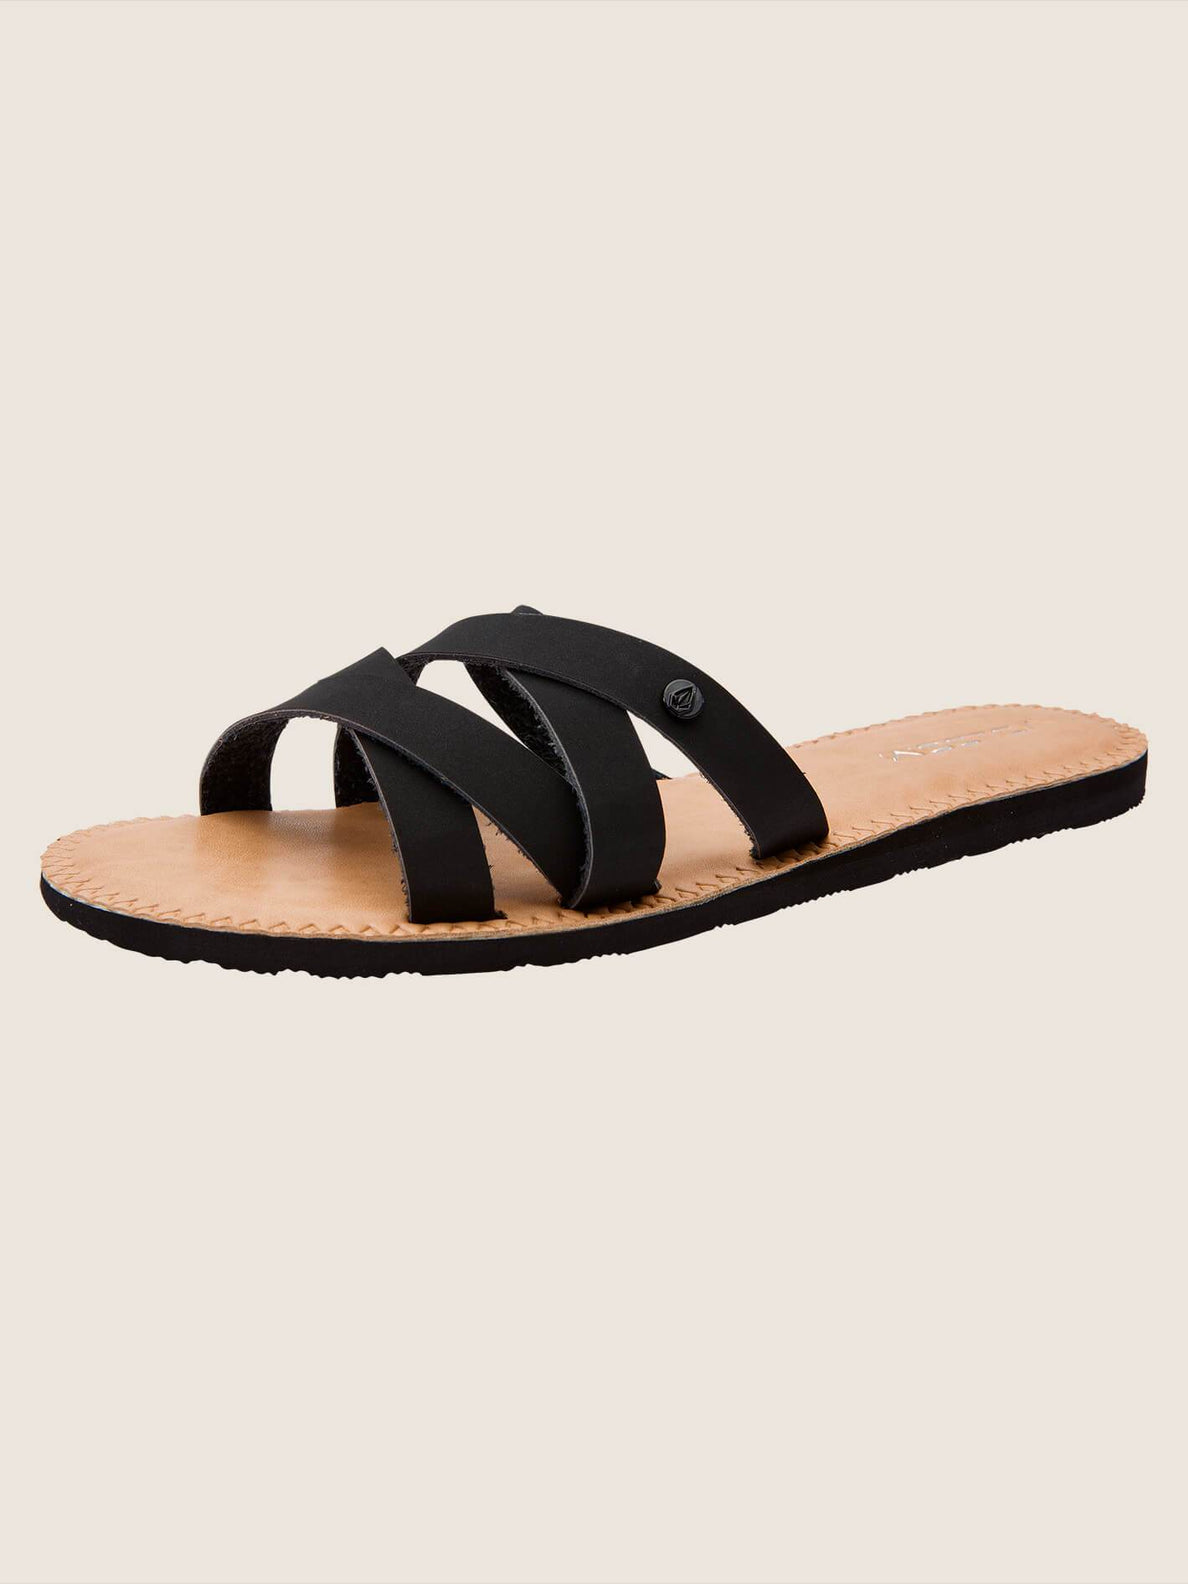 Garden Party Sandals In Black, Back View